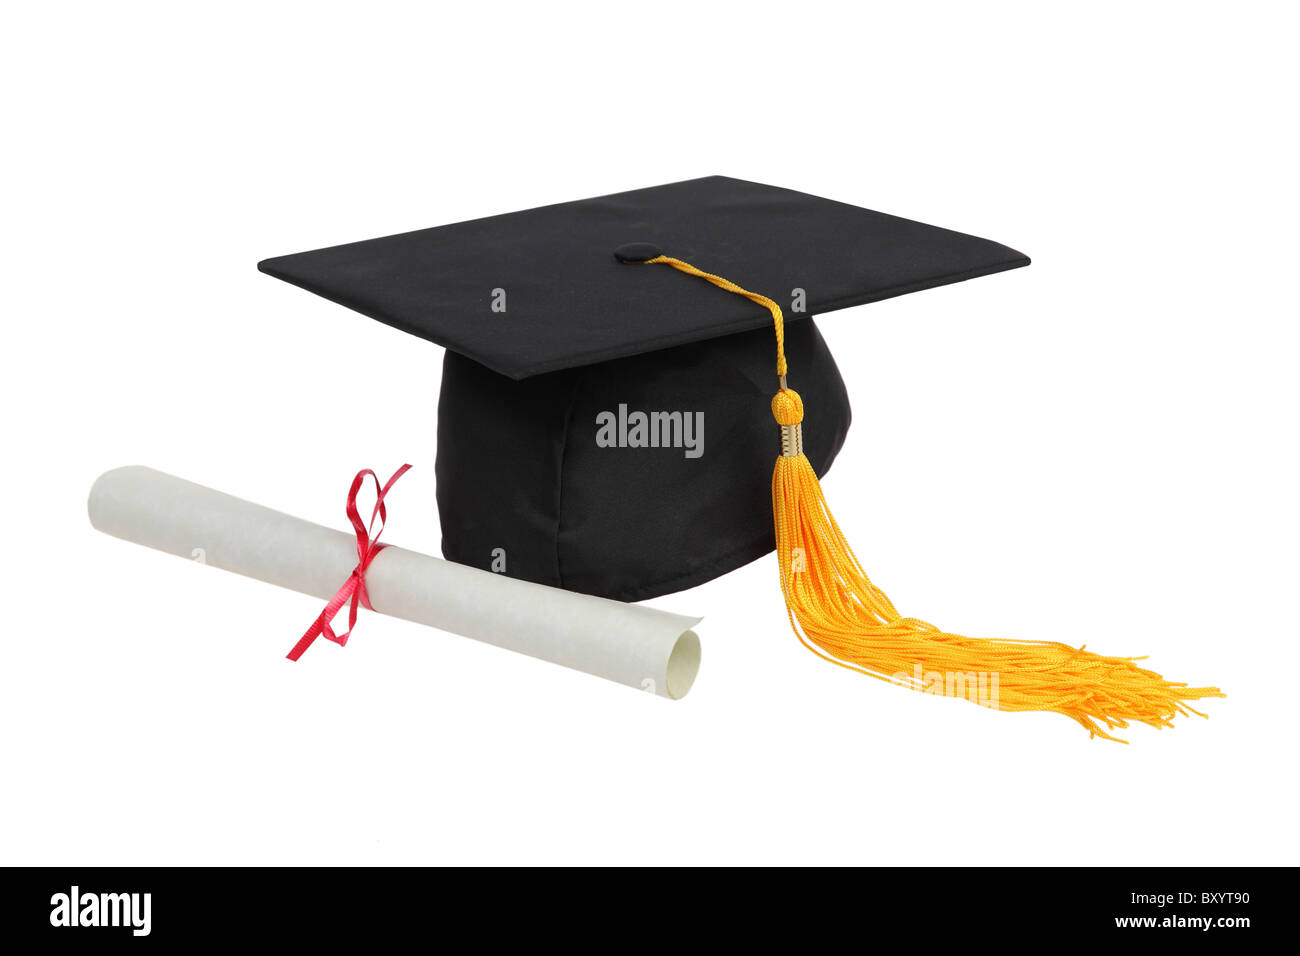 Graduation hat and diploma on white background - Stock Image